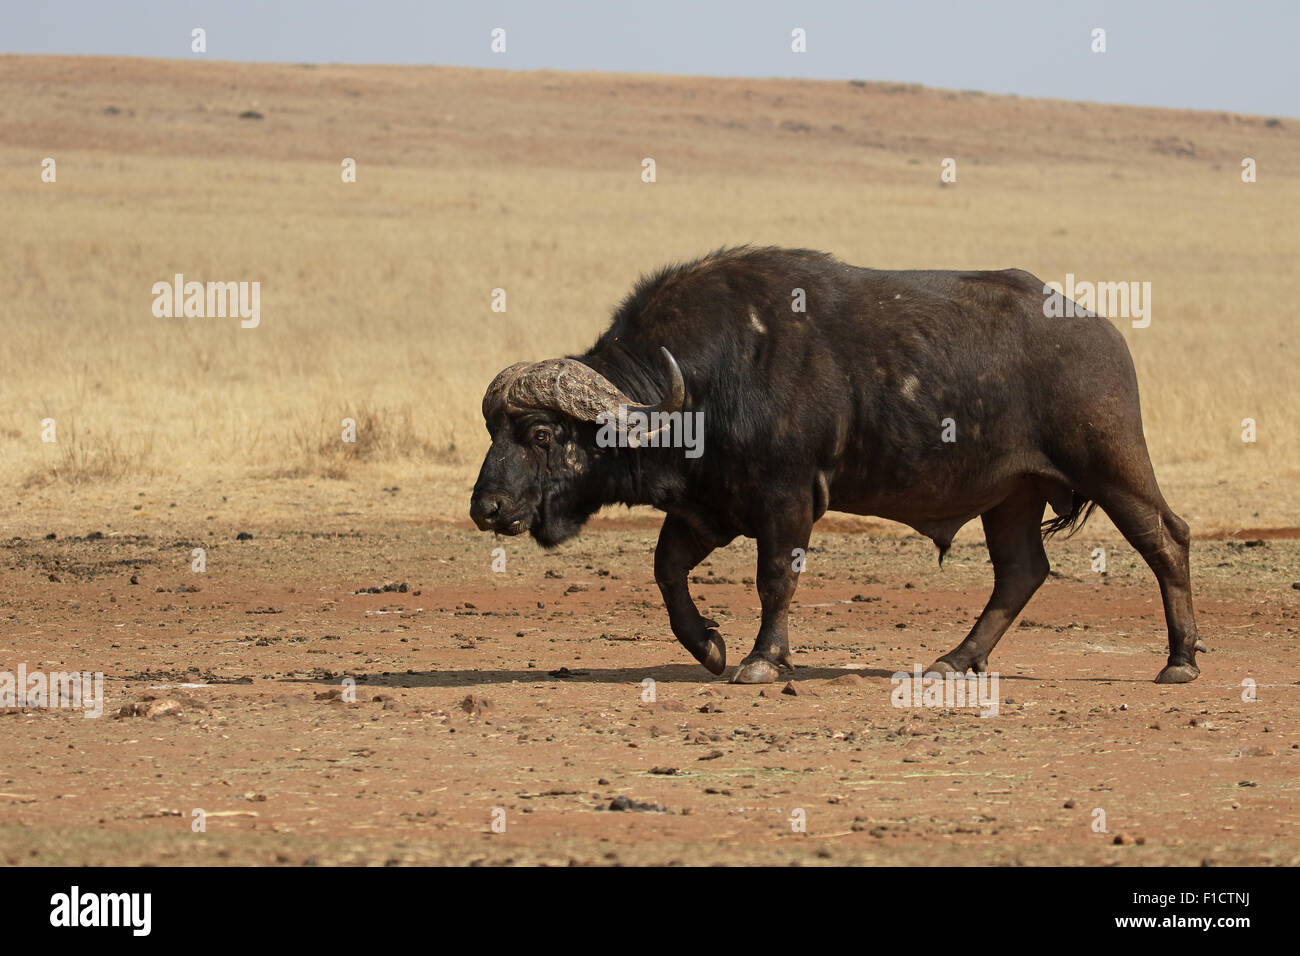 African buffalo, Syncerus caffer,  single mammal on grass, South Africa, August 2015 Stock Photo